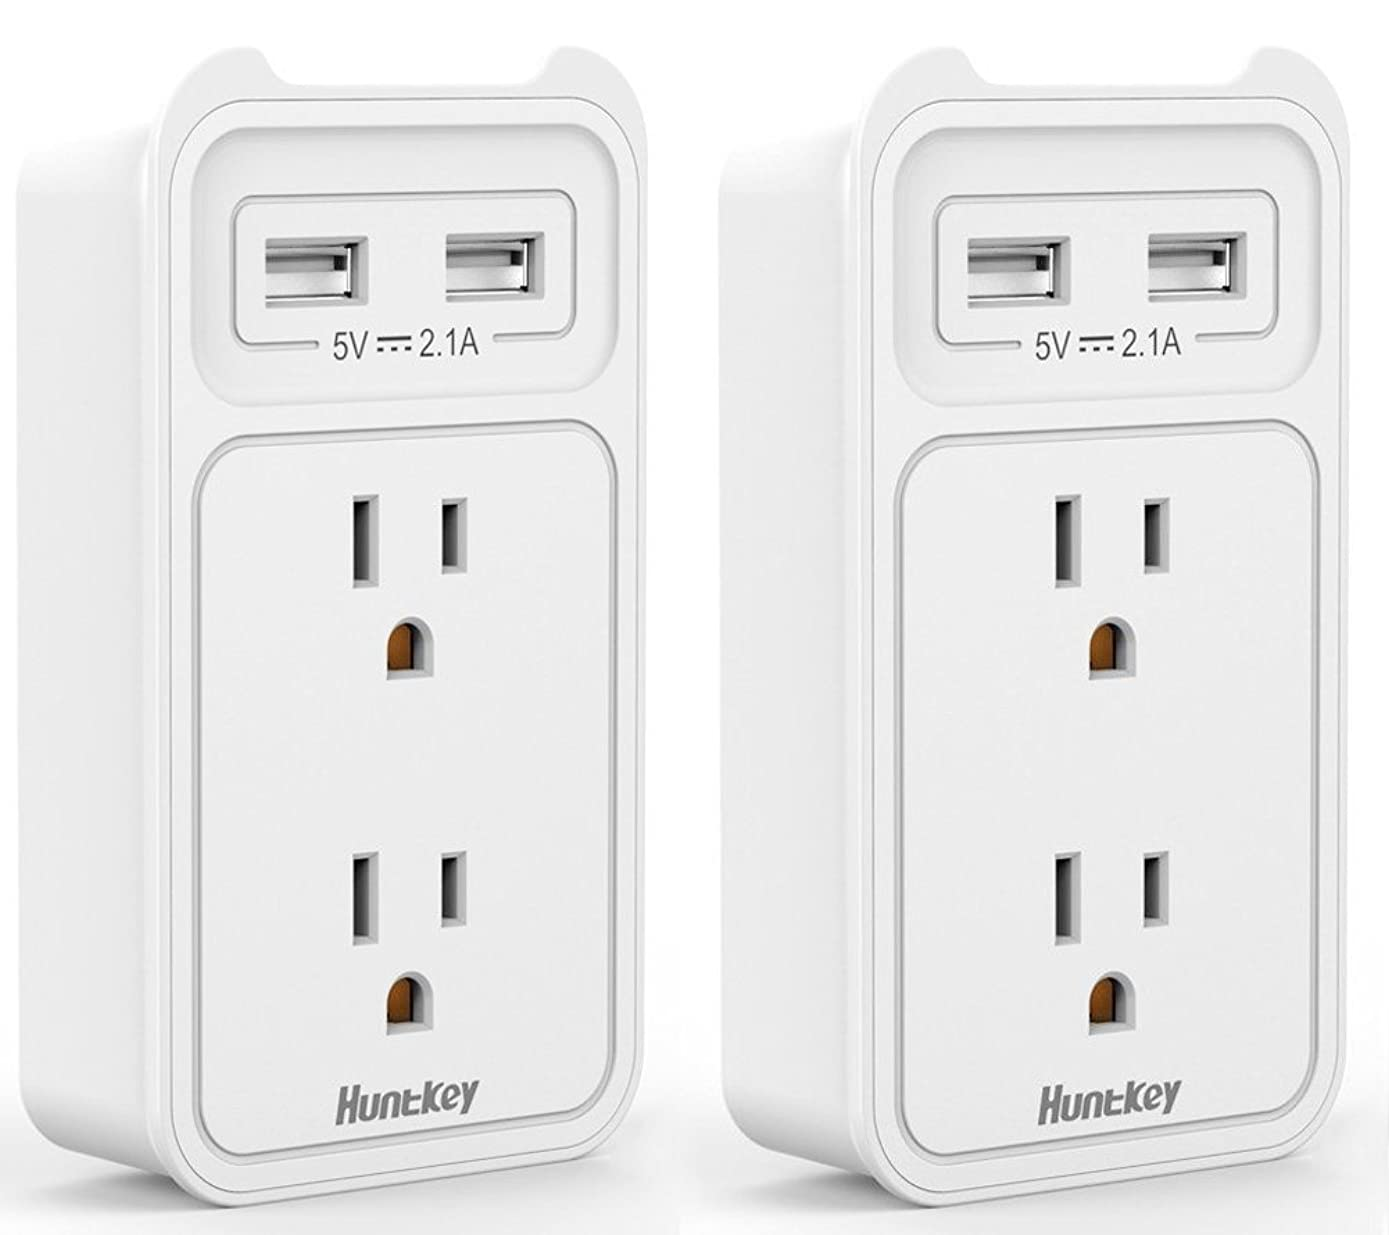 Huntkey 2-Outlet Wall Mount Cradle with Dual 2.1 AMP USB Charging Ports, SMD407 (White / 2 pack)